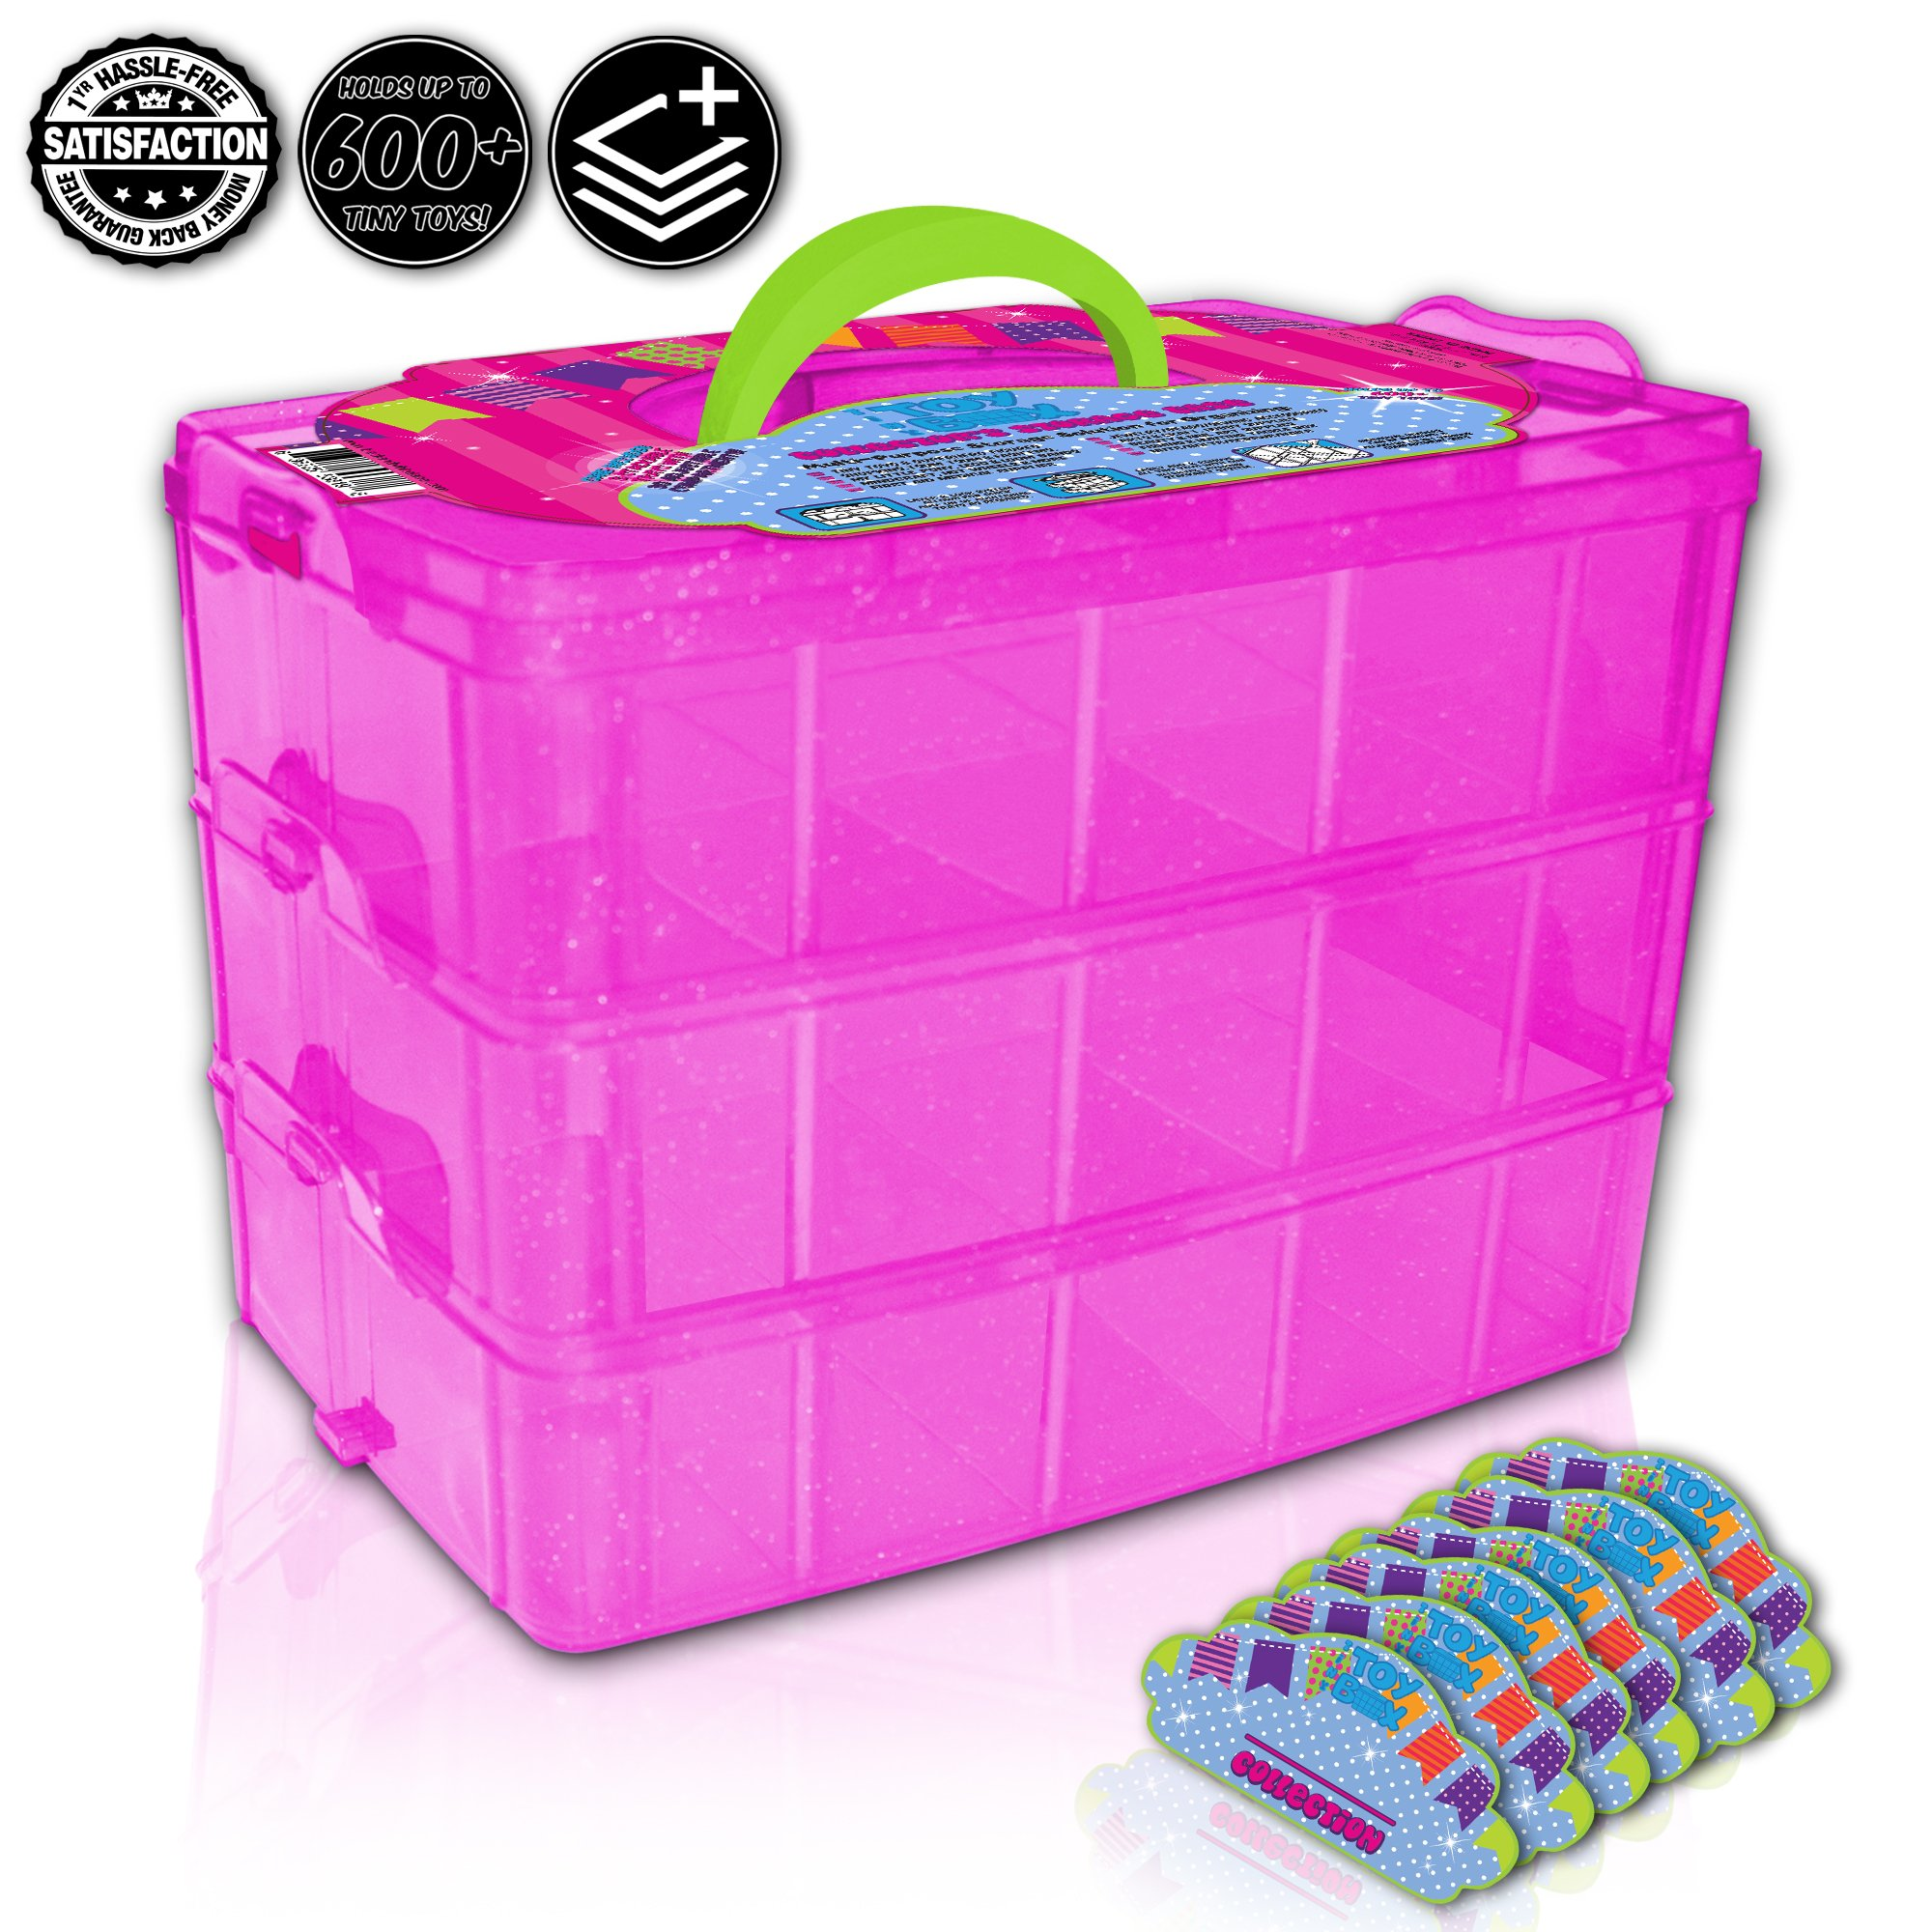 Holds 600 - Tiny Toy Box Shopkins Storage Case Organizer Container - Stackable Collectors Carrying Tote Compatible With Mini Toys Colleggbles LoL Fash'ems Tsum Tsum Hot (Pink Sparkle/Green)